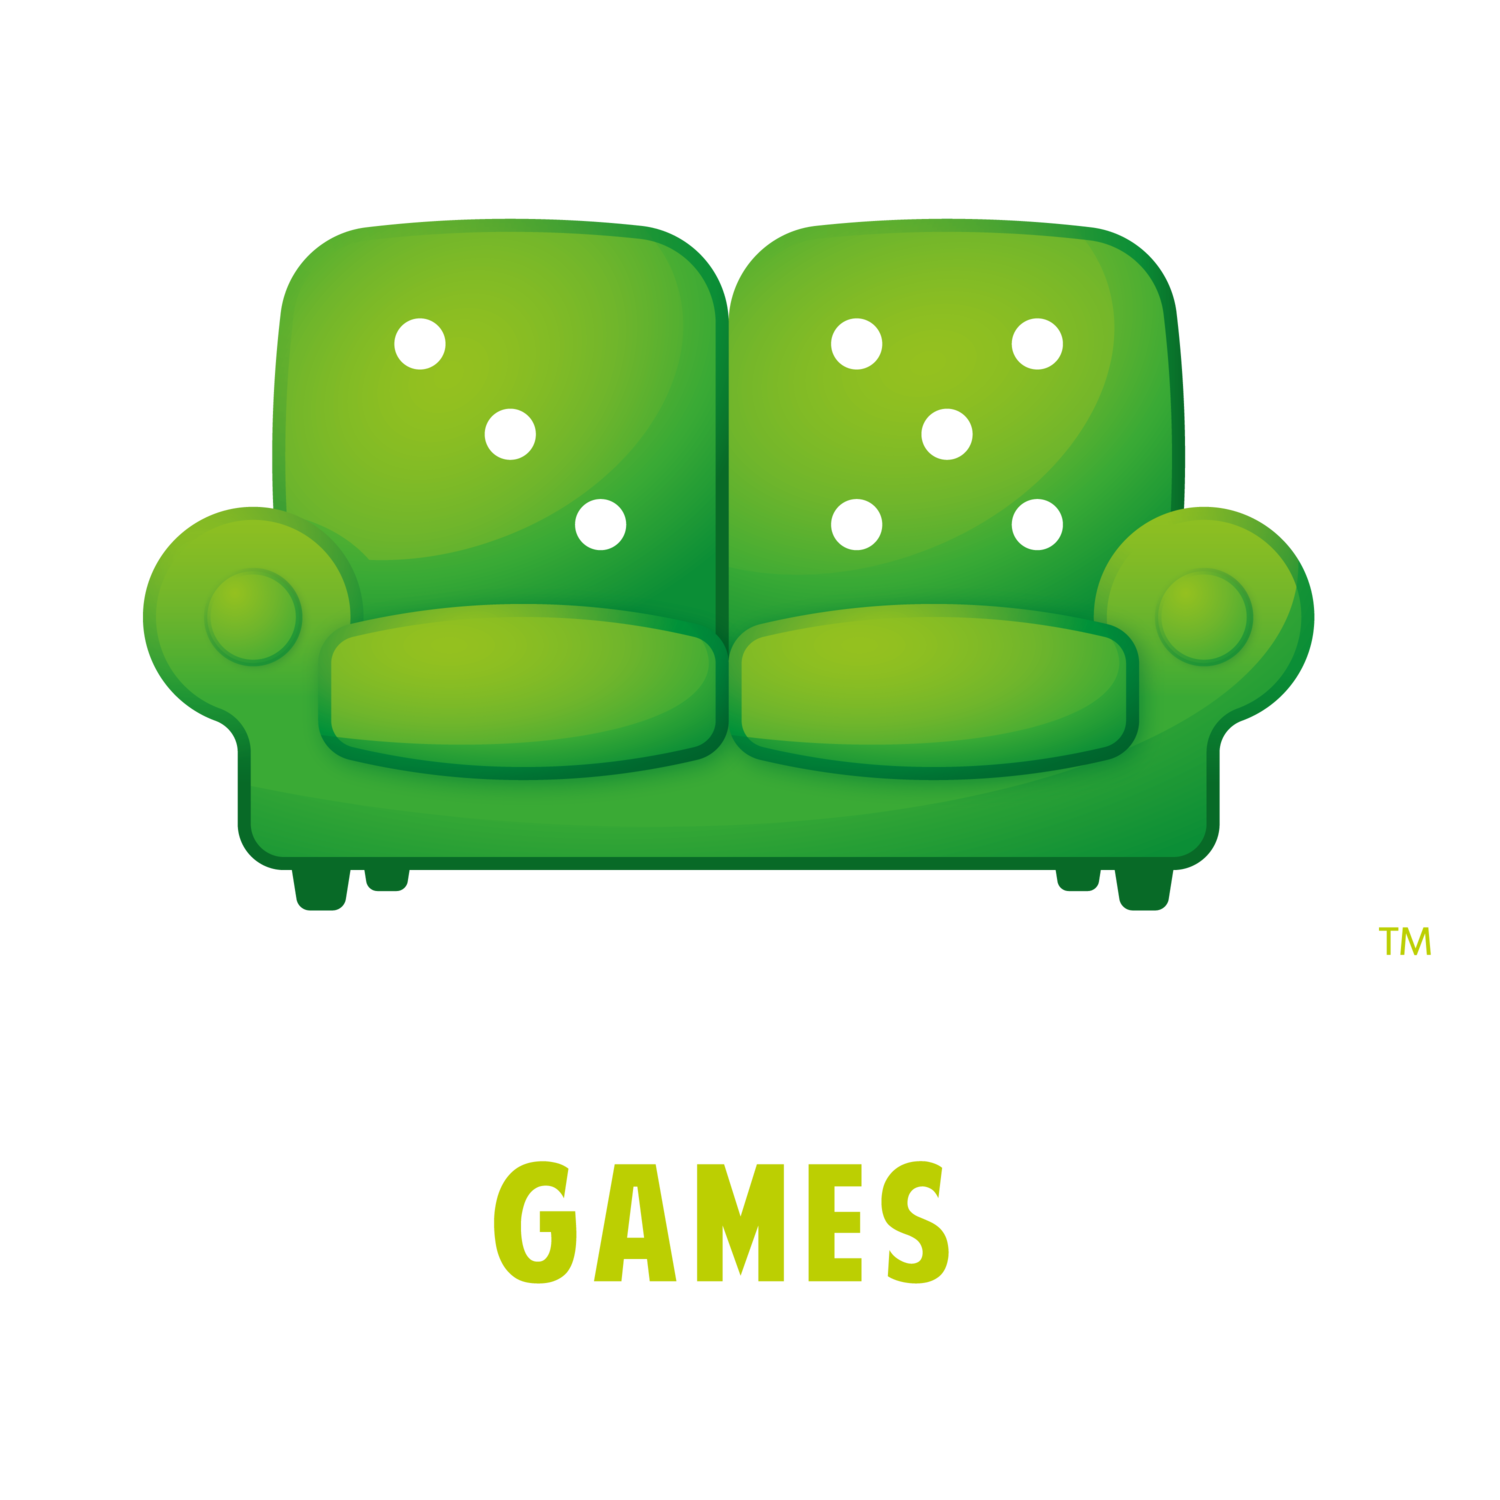 Couch clipart green couch. Games